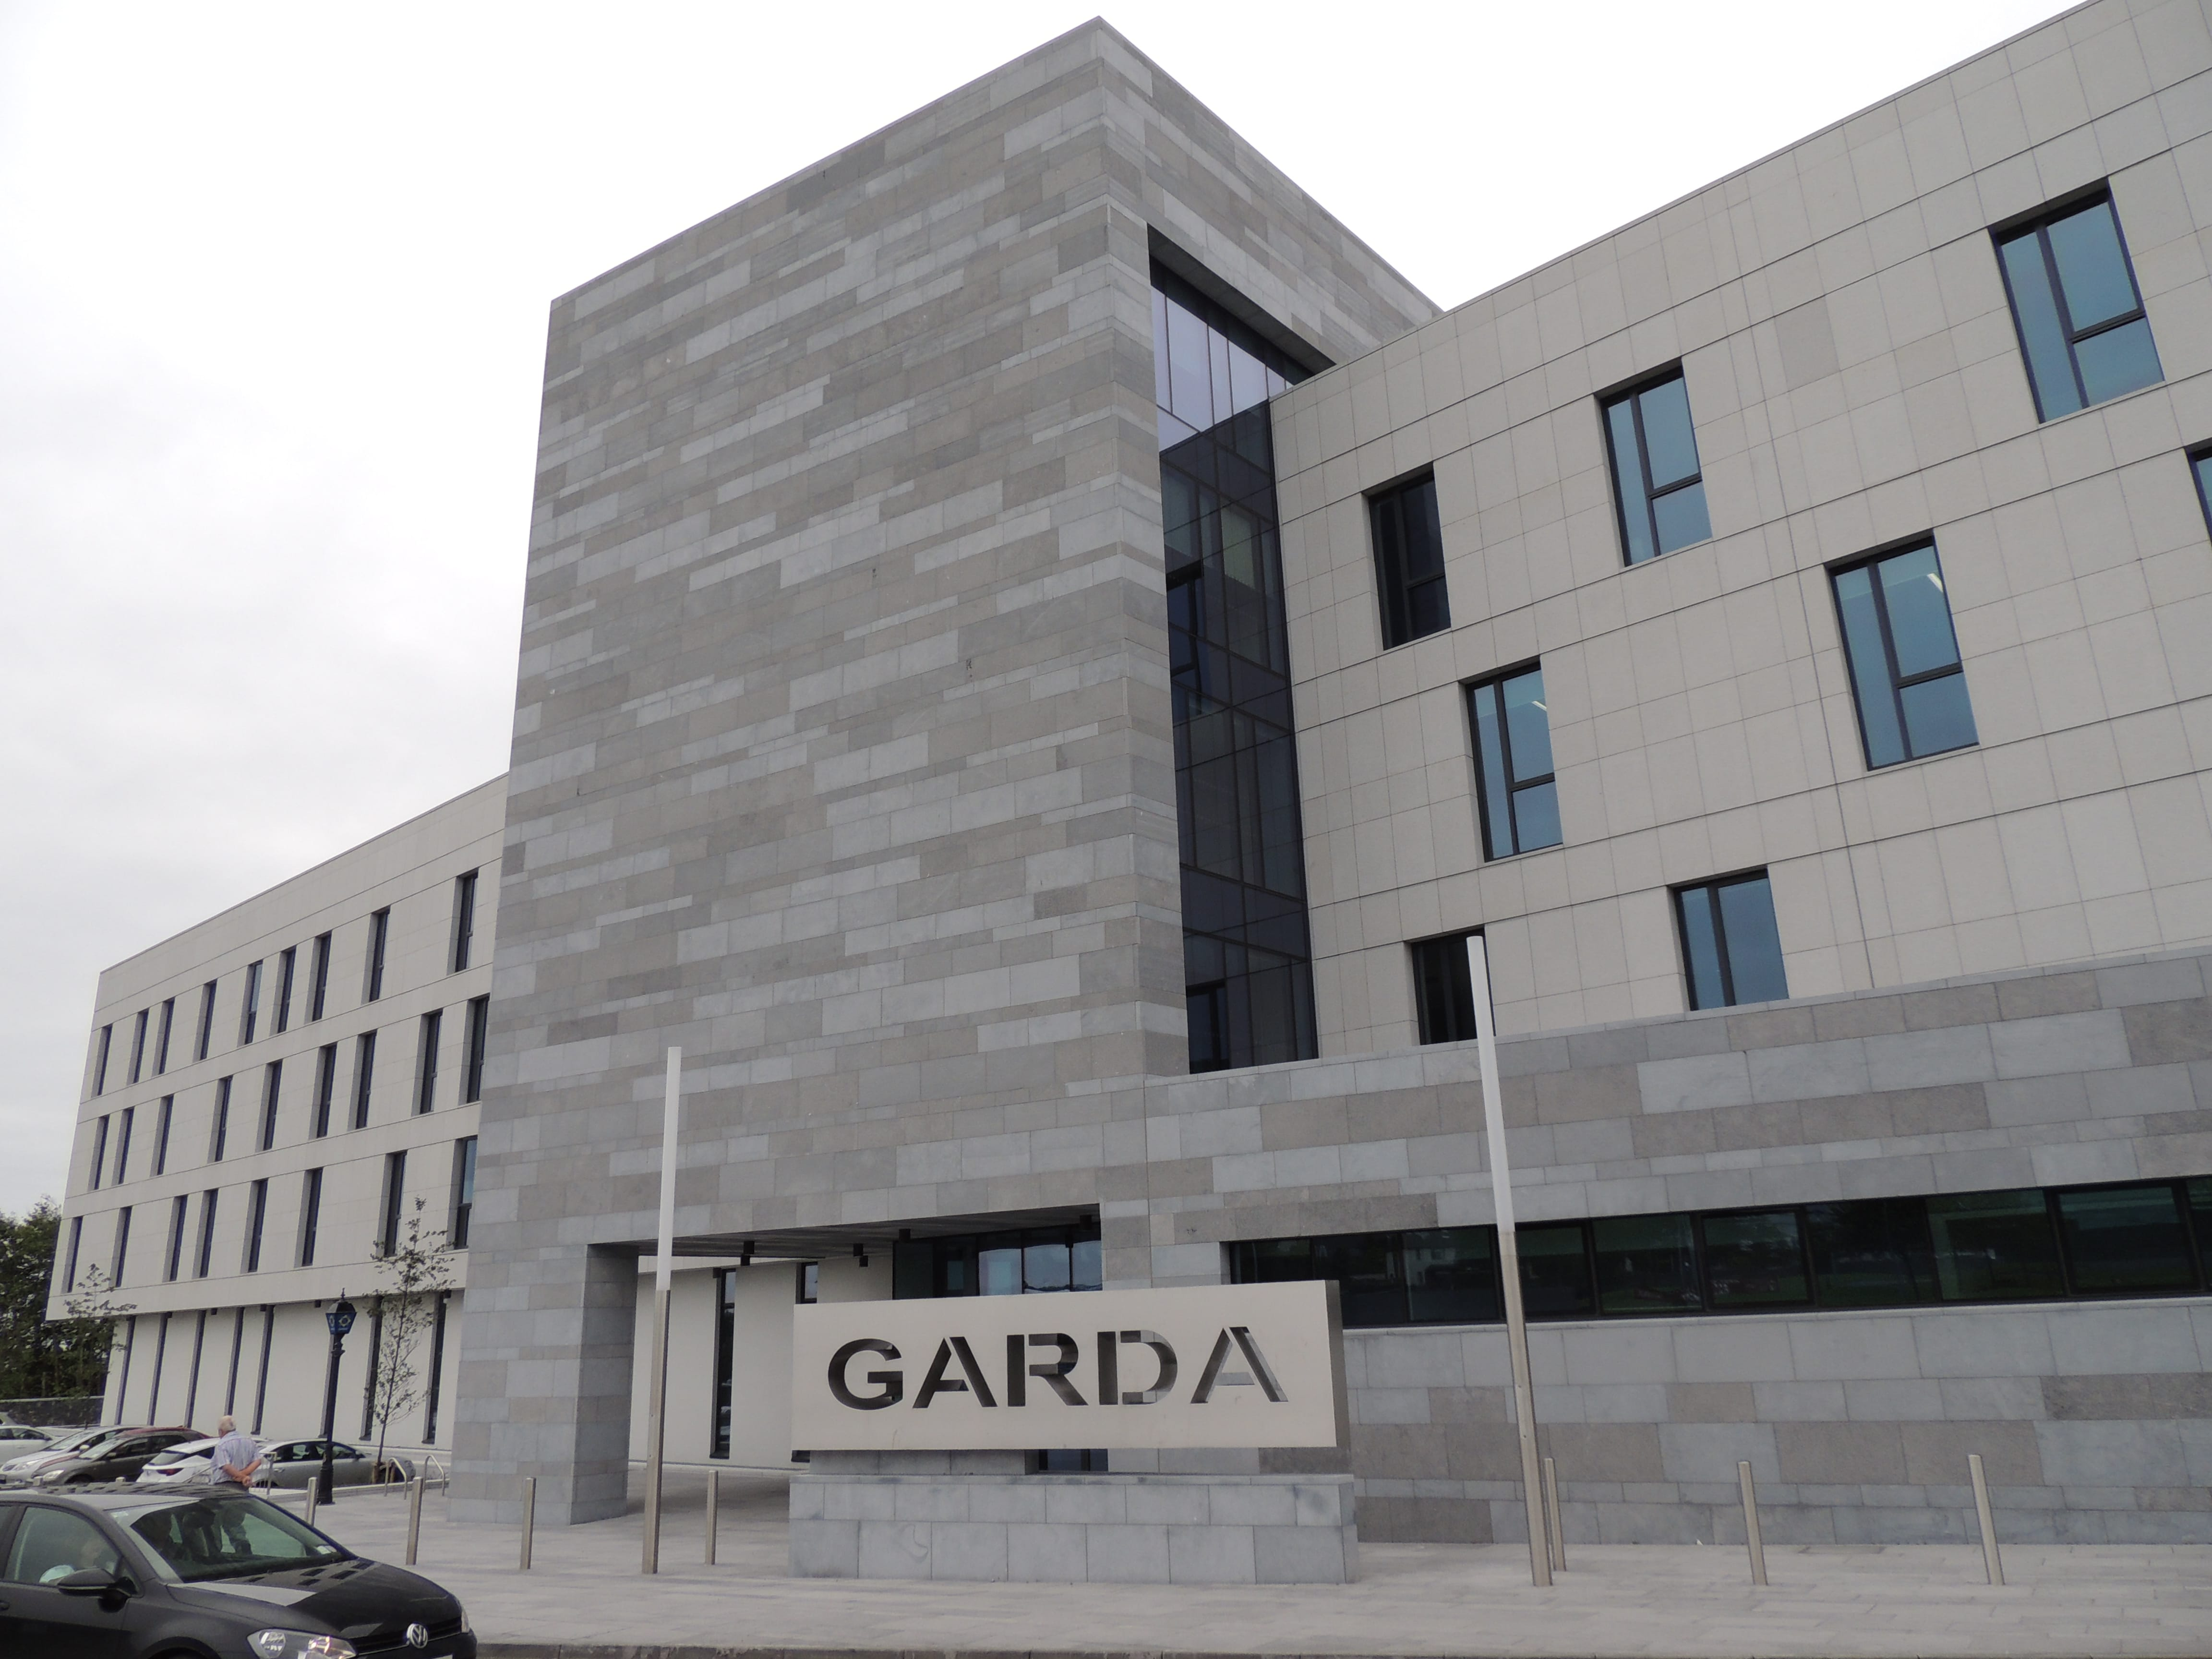 Mellifont Charc 3 size Garda HQ Galway KilsaranMellifont Charc 3 size Garda HQ Galway Kilsaran